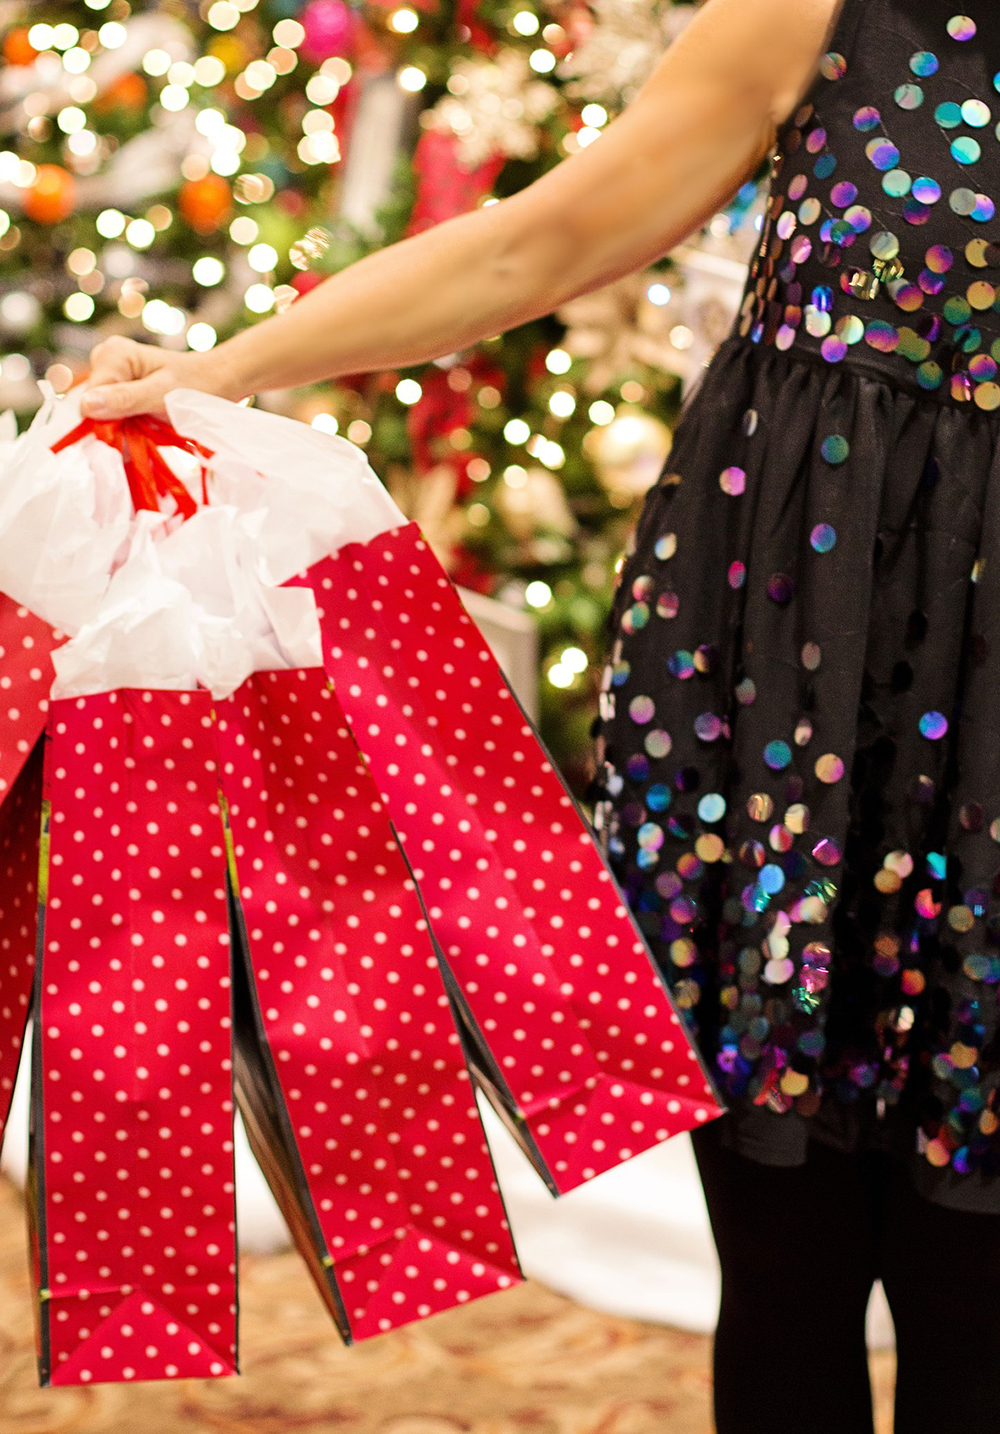 Holiday 2021 Shopping Tips to Avoid Supply Chain Shortage Problems